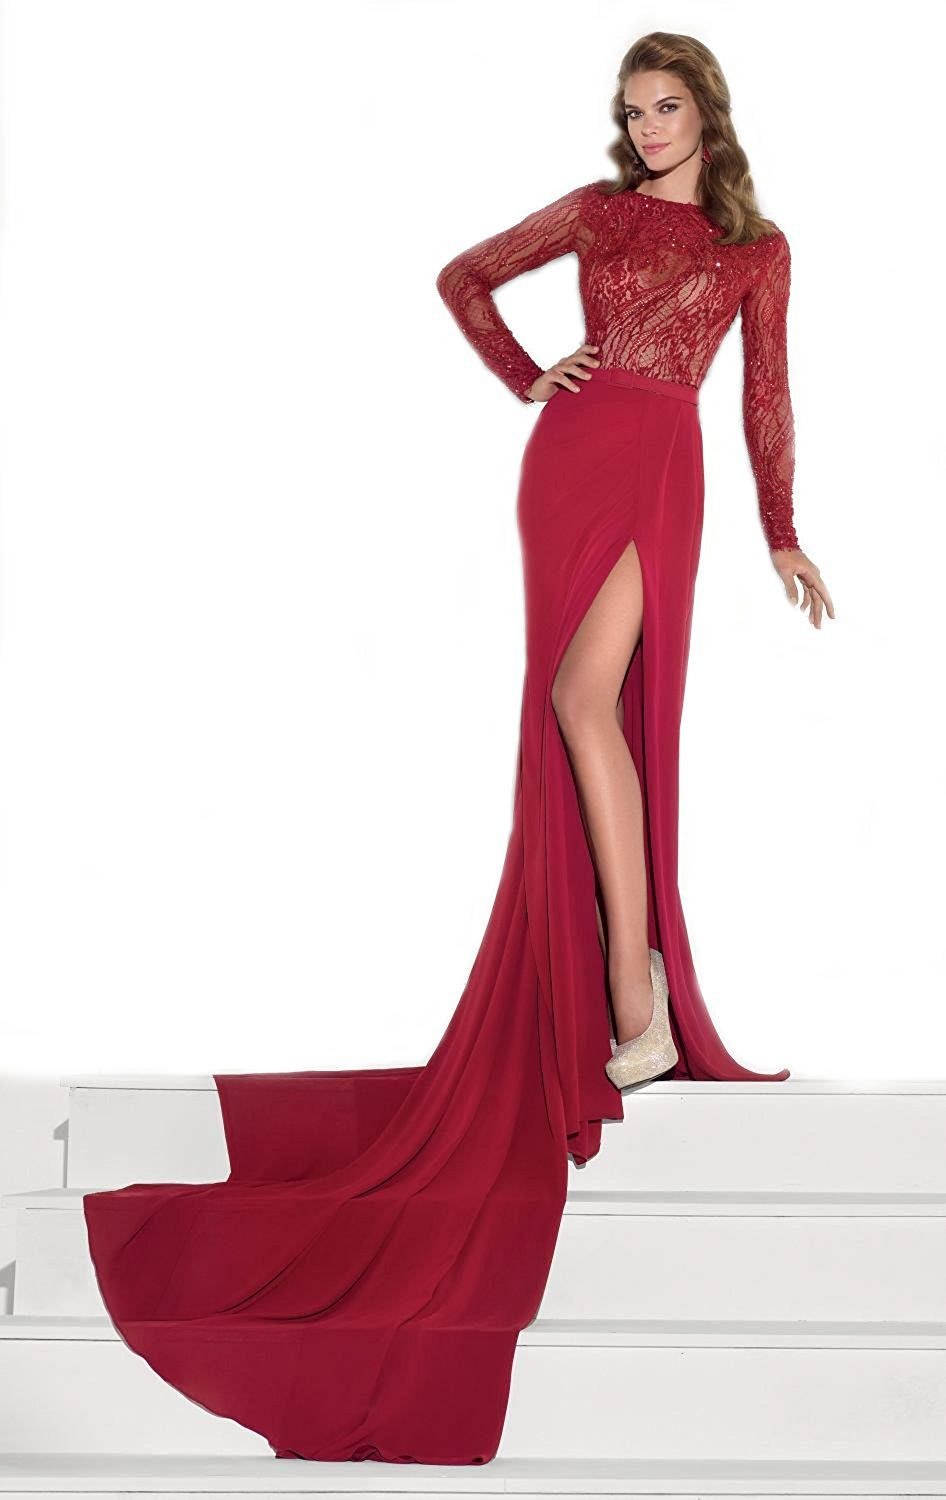 Topsexy burgundy long sleeved lace slit gown trumpet mermaid prom